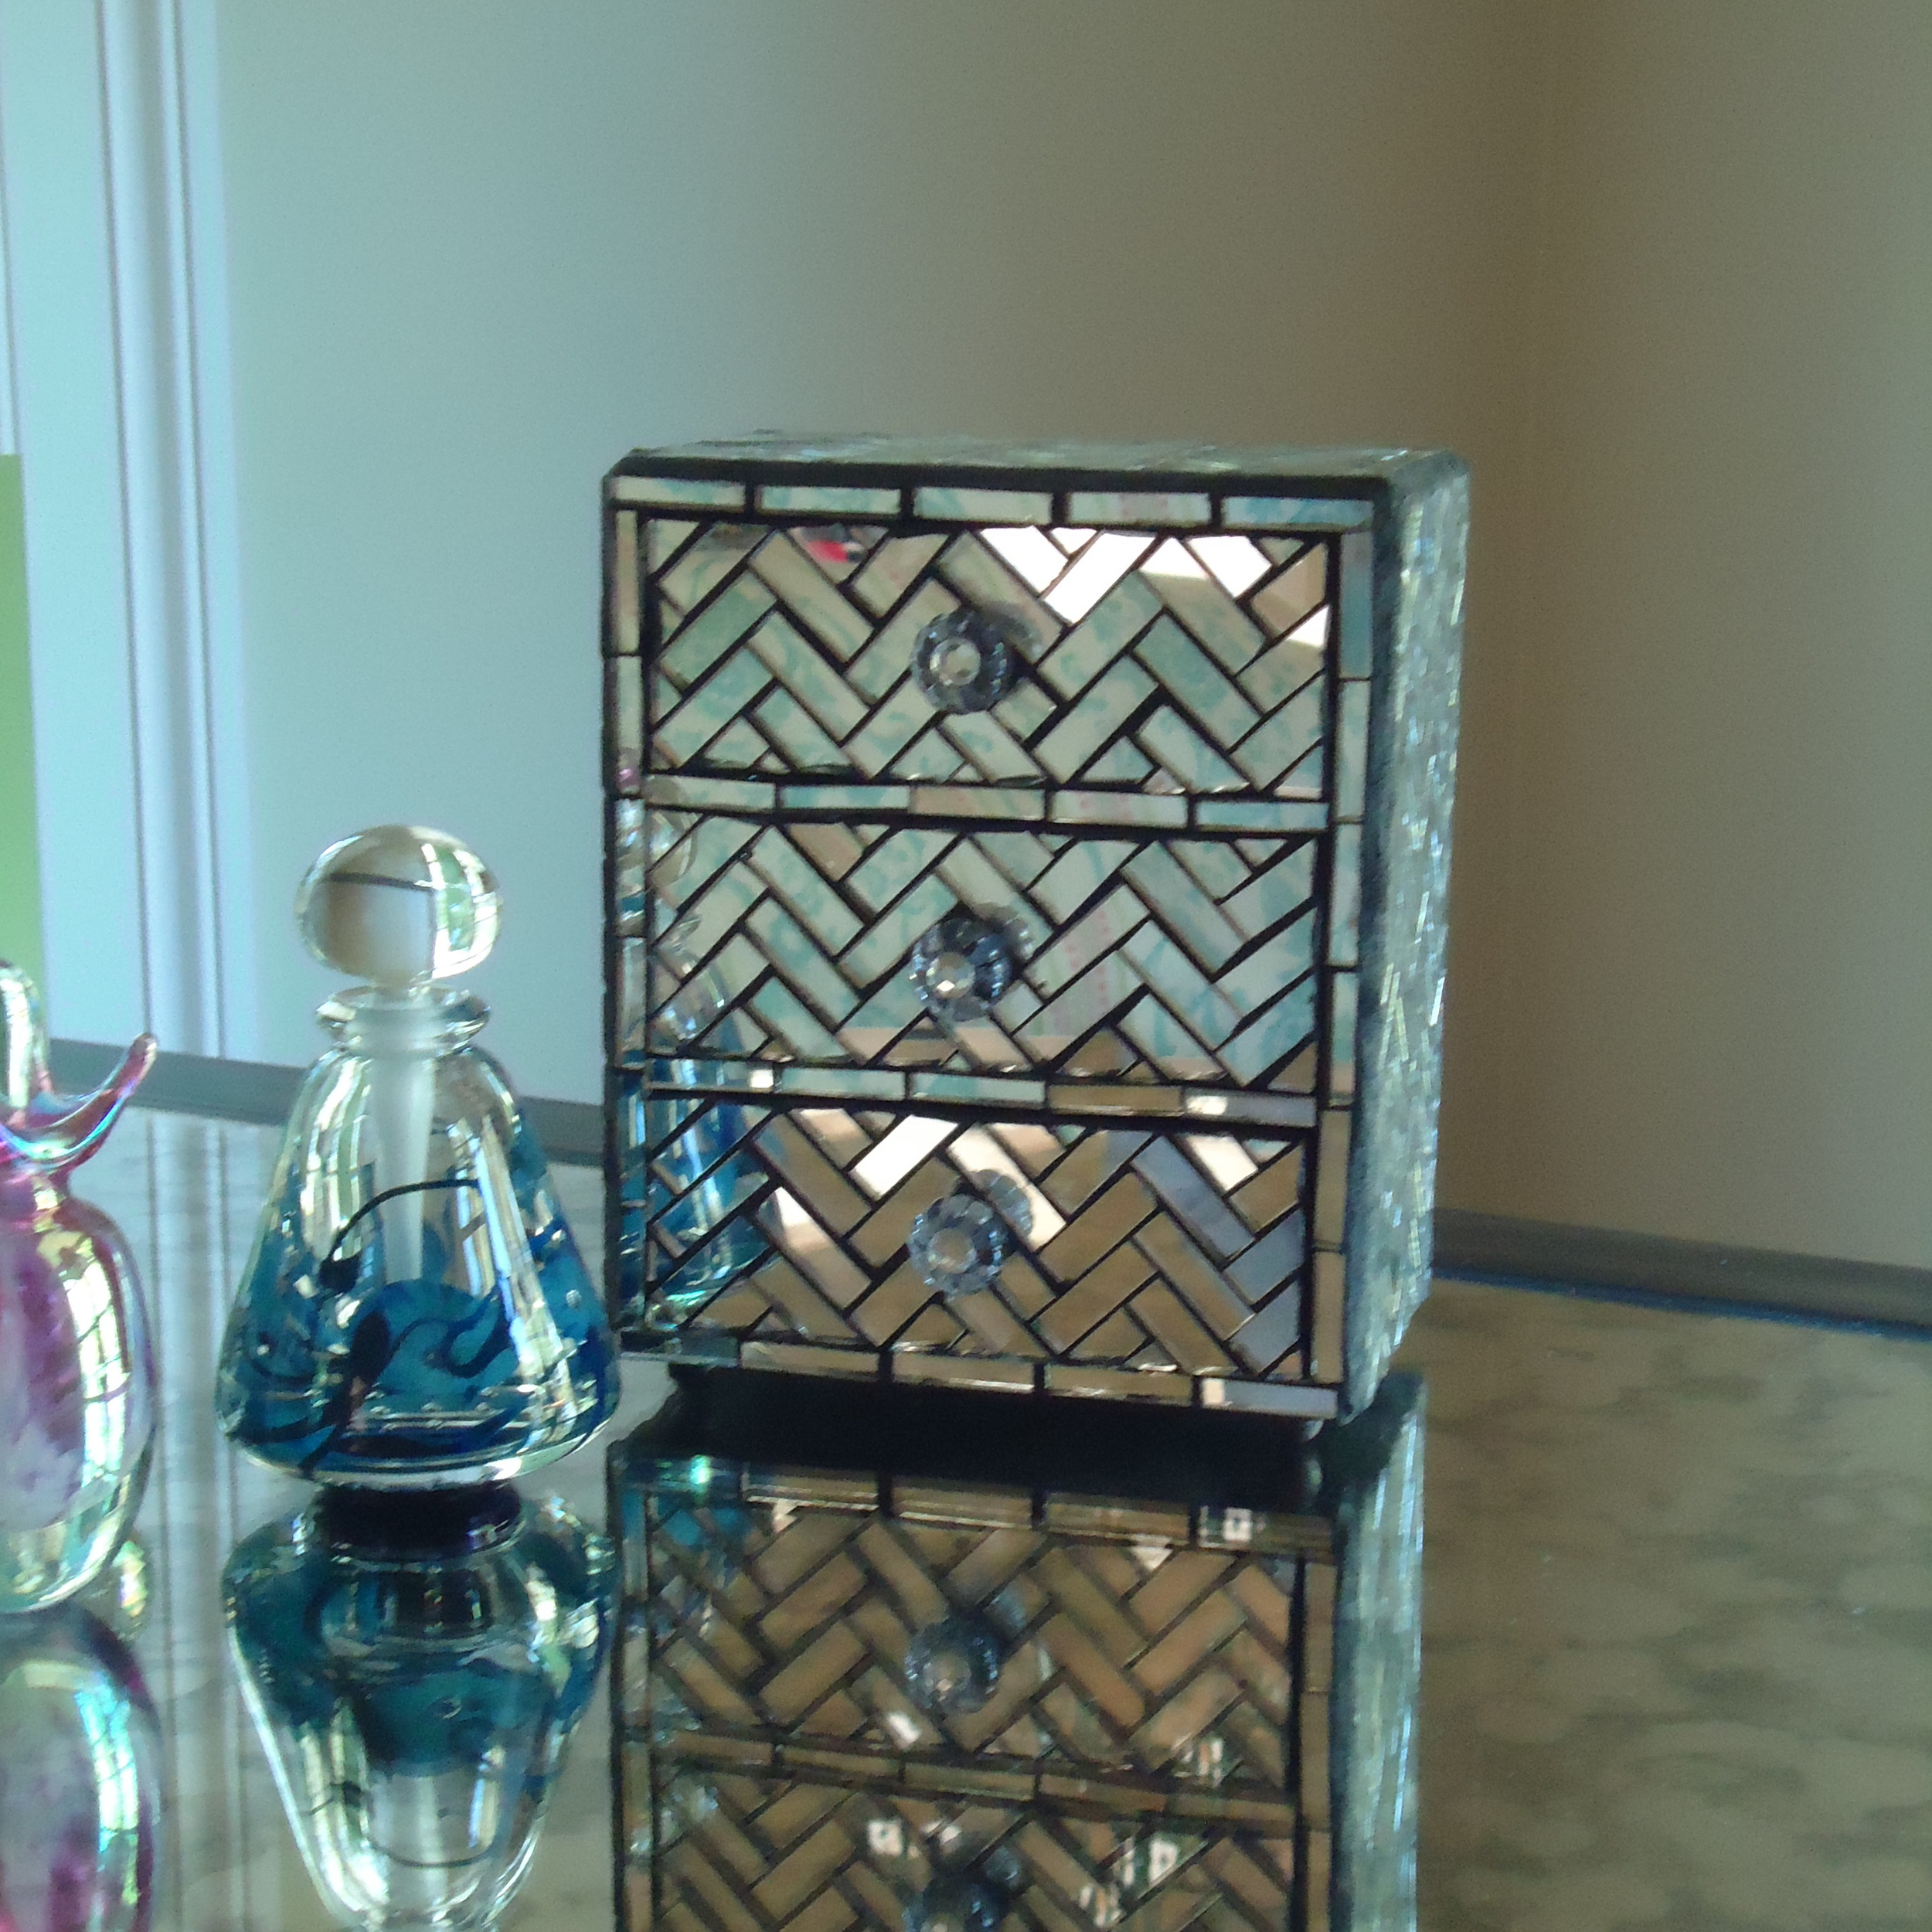 mirror live in mosaics jewelry storage box.JPG